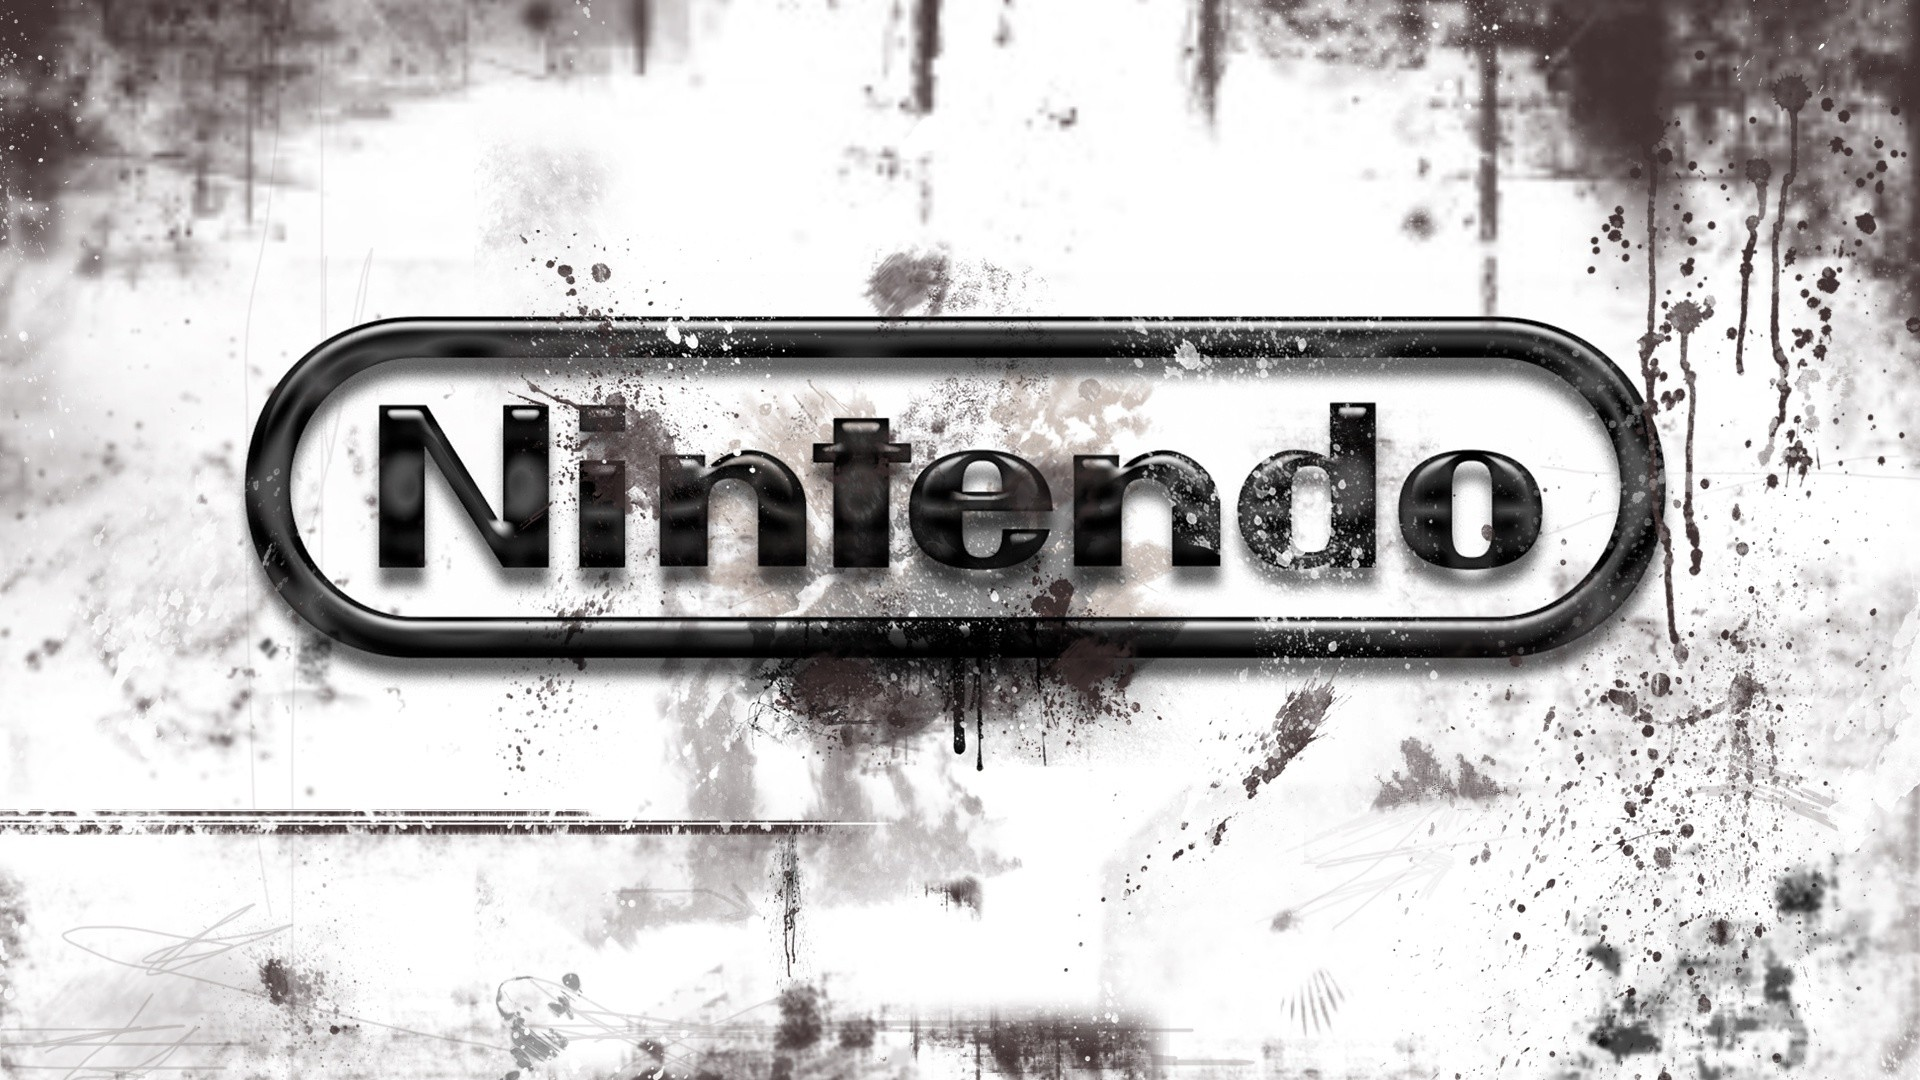 Nintendo. How to set wallpaper on your desktop? Click the  download link from above and set the wallpaper on the desktop from your OS.